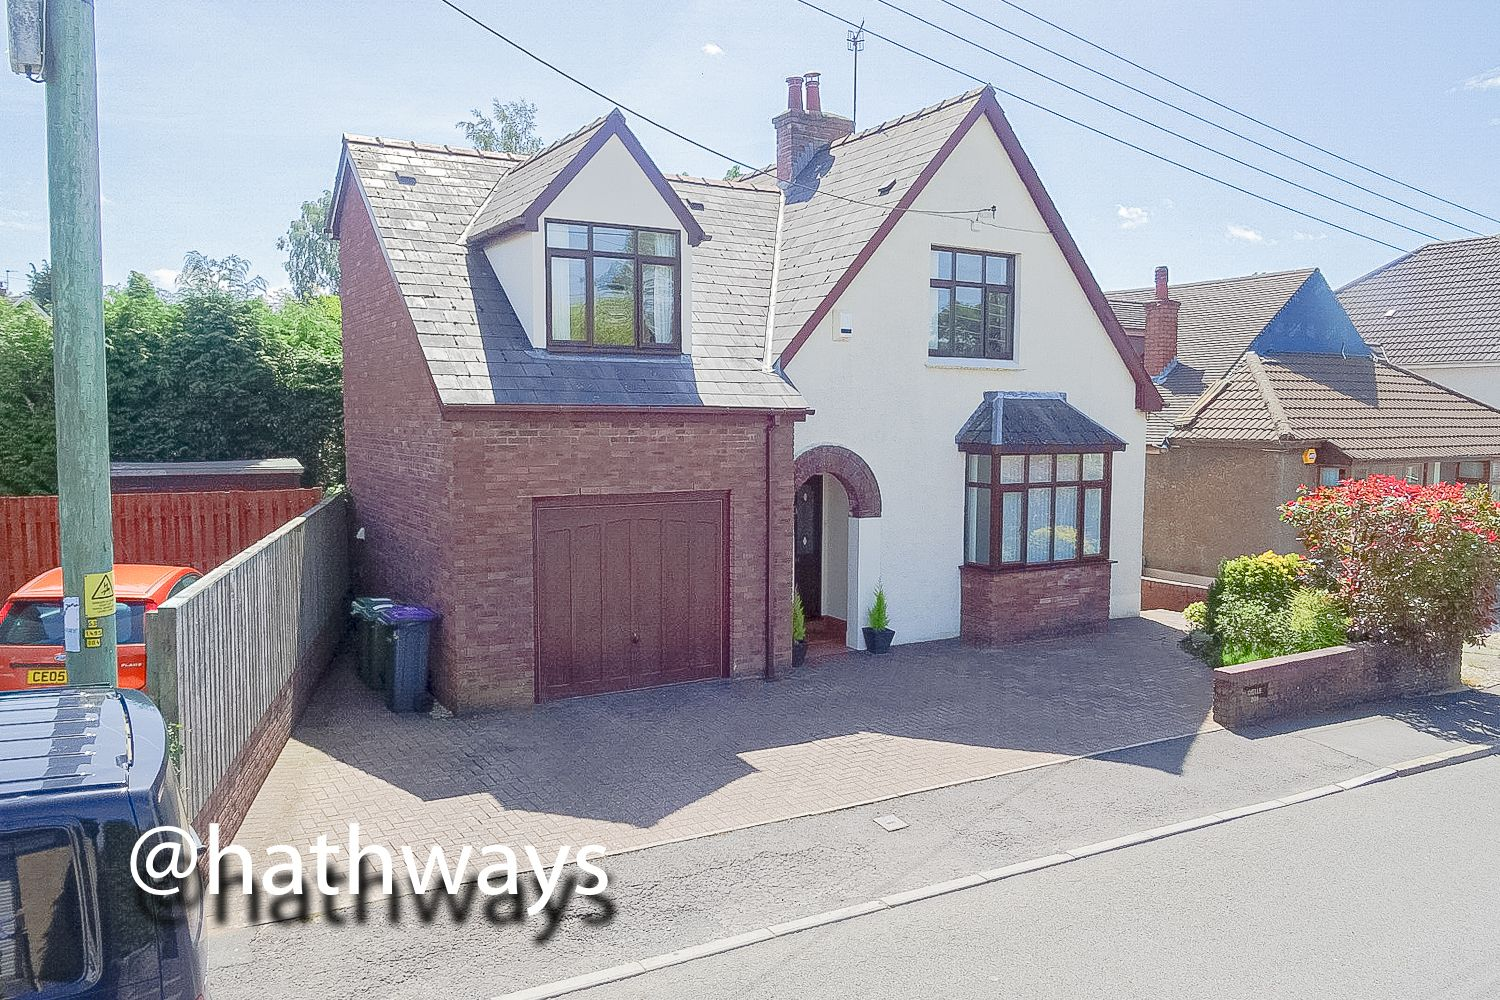 4 bed house for sale in Ashford Close South - Property Image 1